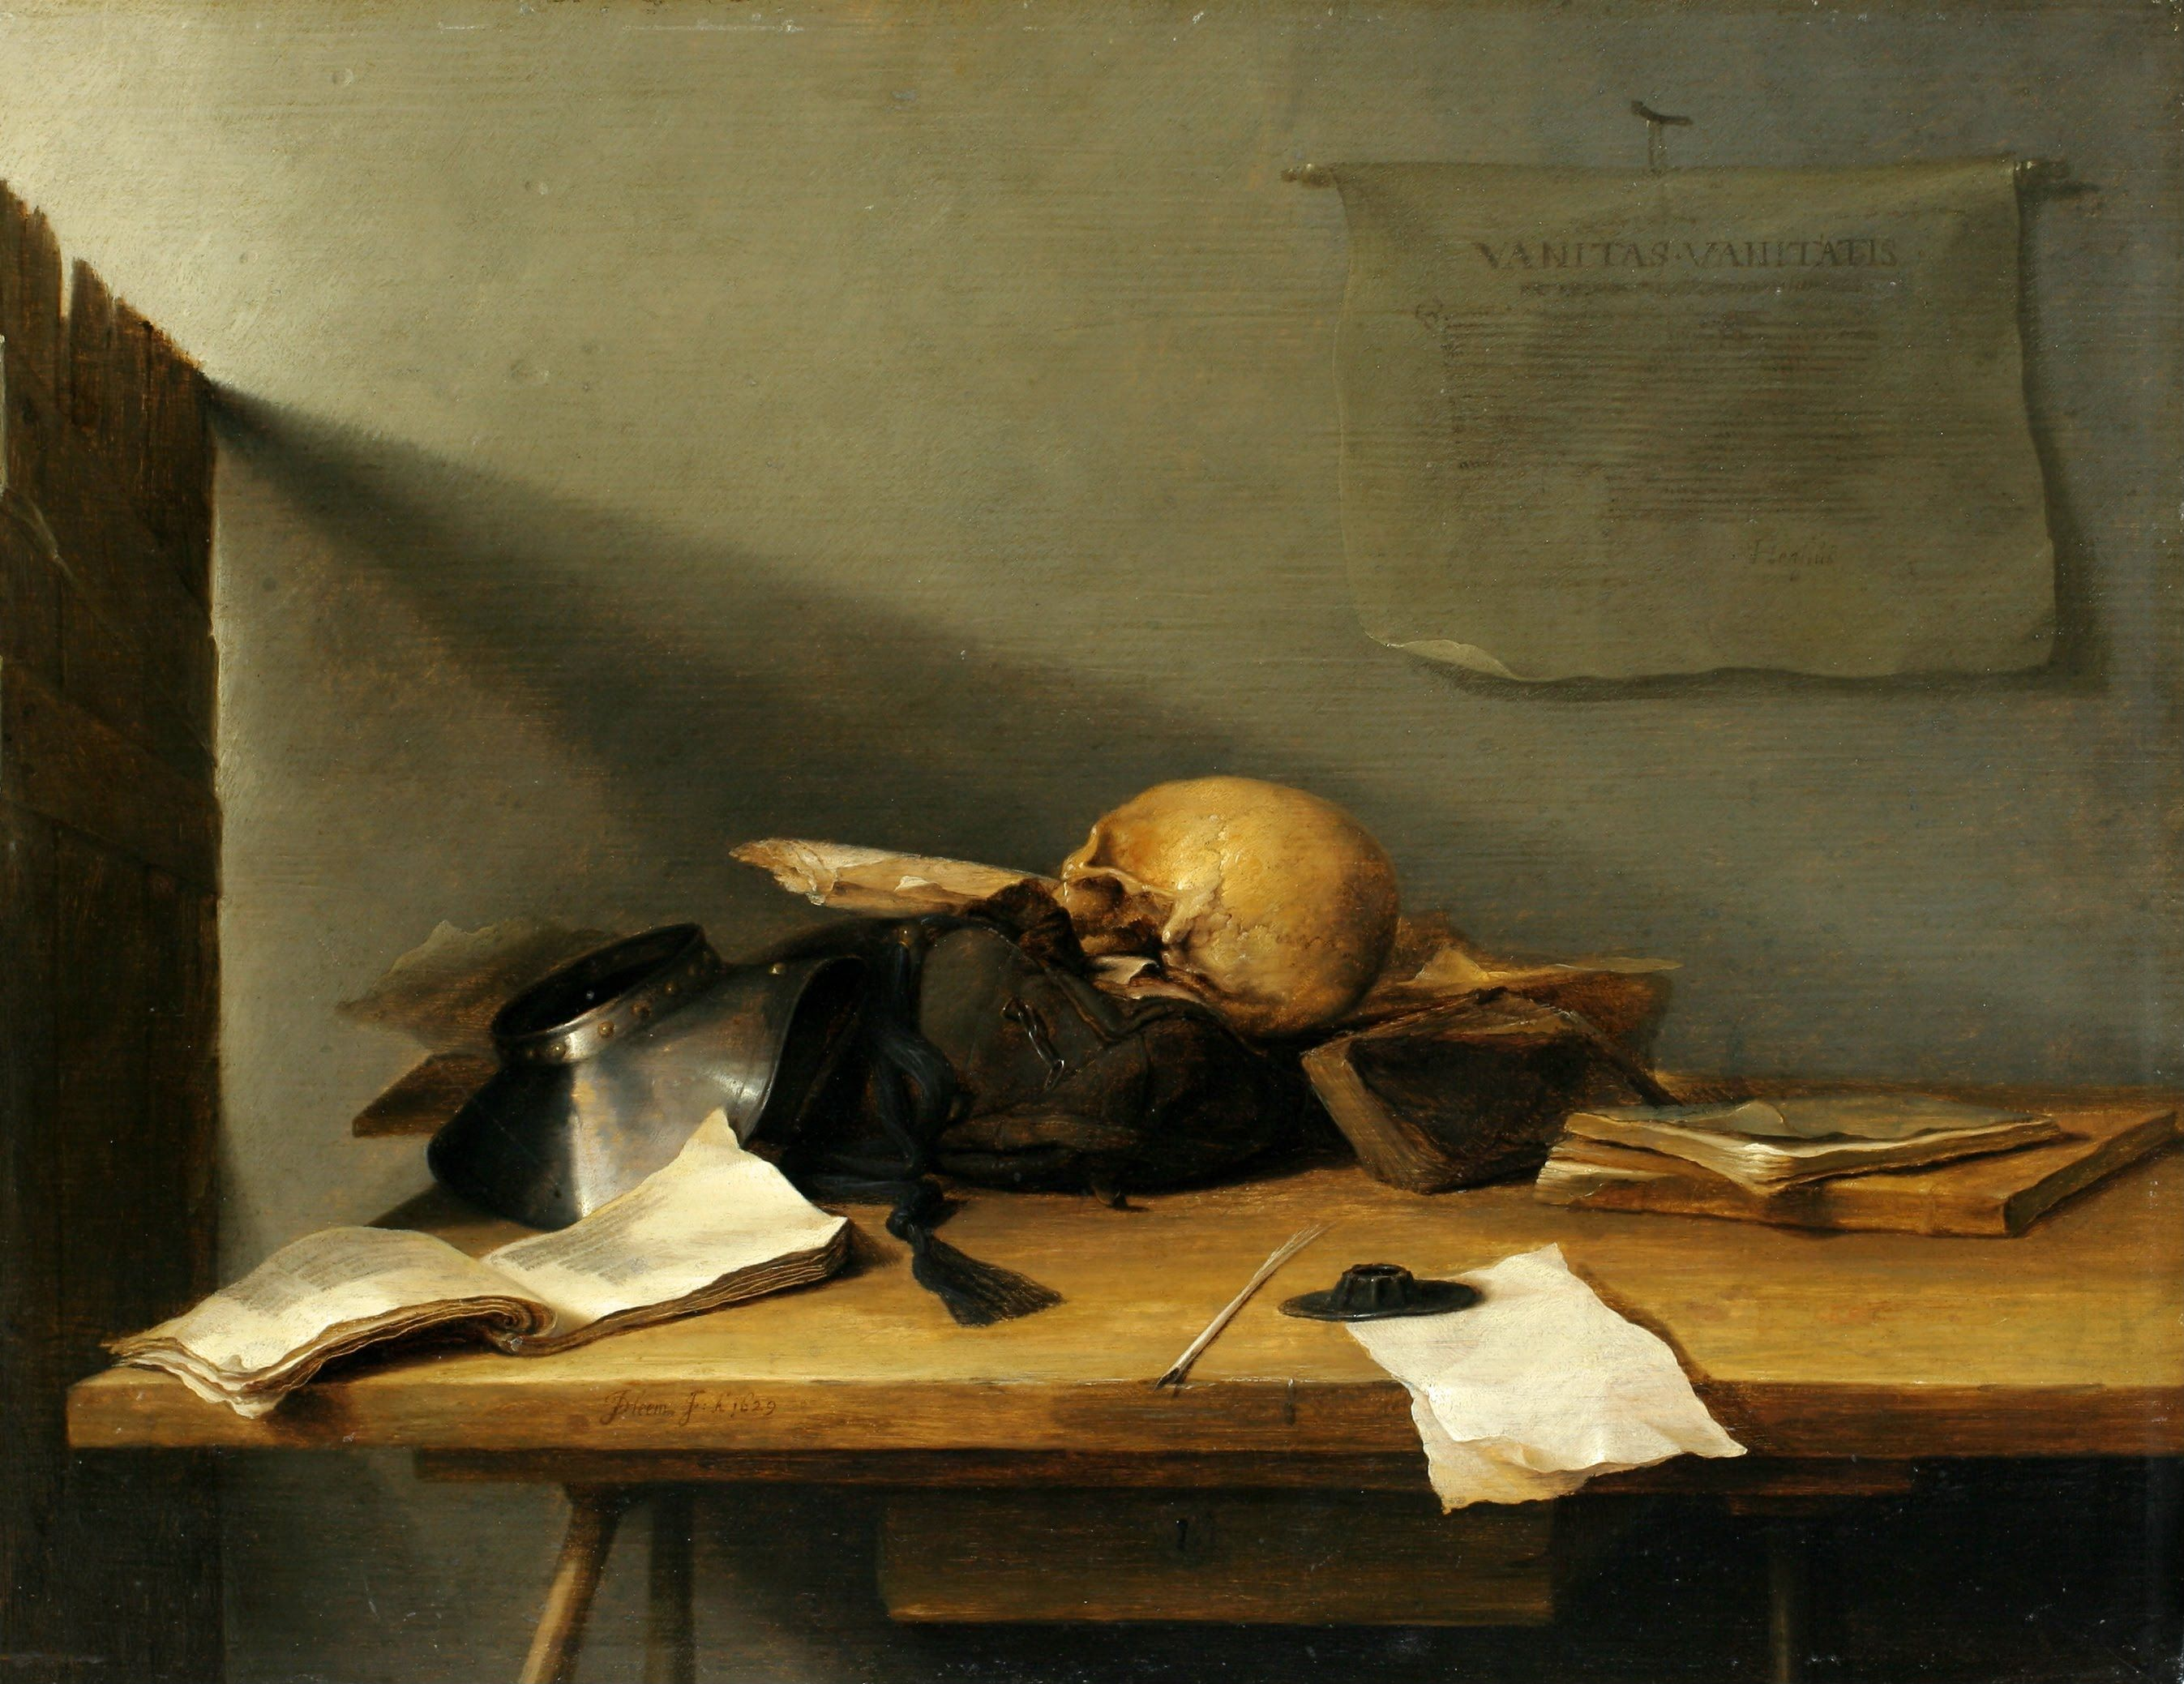 http://upload.wikimedia.org/wikipedia/commons/f/f4/Jan_Davidszoon_de_Heem%2C_Still-life_with_Books_and_Skull_%28Vanitas%29.JPG